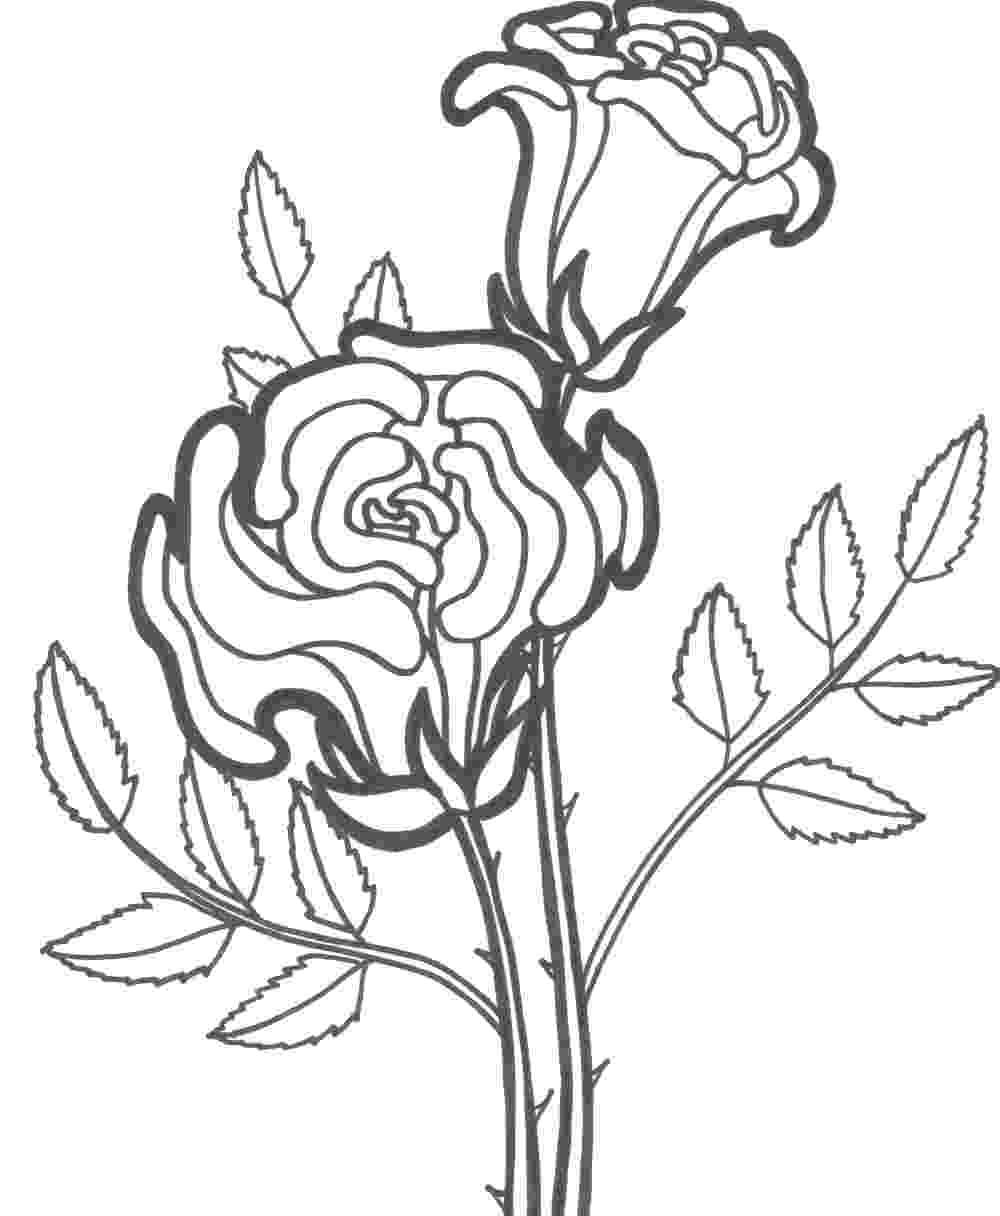 pics of roses to color roses coloring pages to download and print for free color of to roses pics